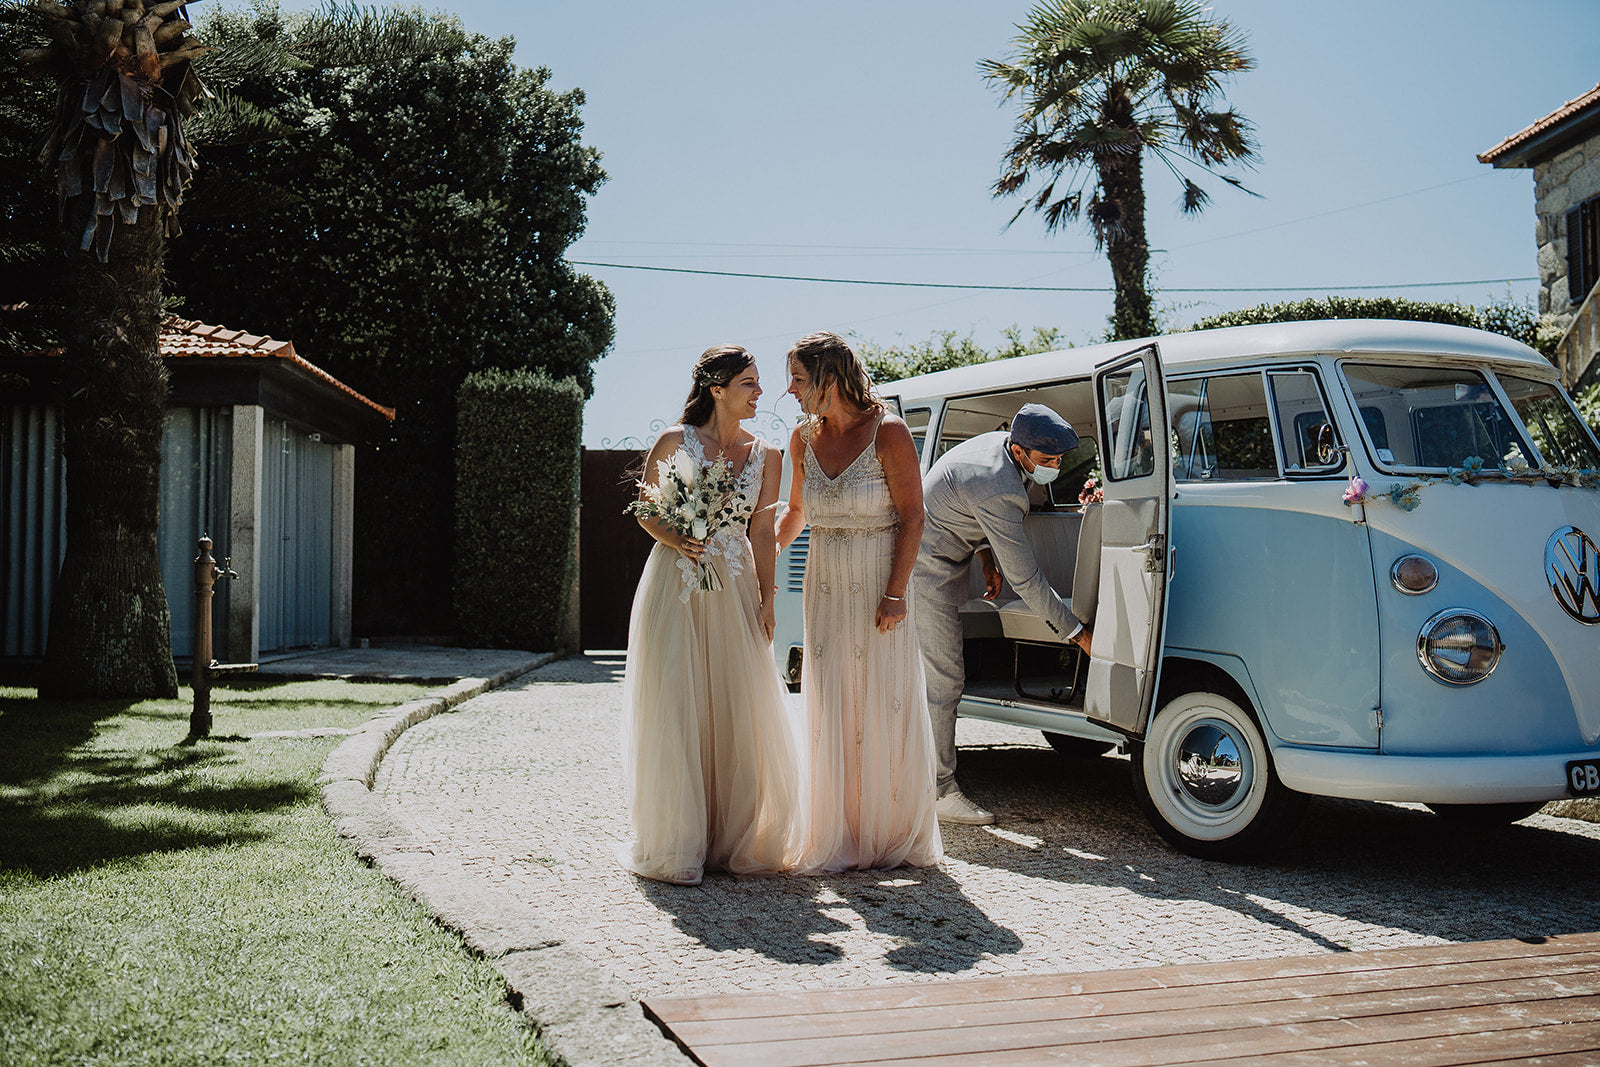 The Bride and Mother of the Bride stand together in their beautiful pre-loved dresses, with the Bride holding flowers. They stand next to a light blue VW Camper Van with a palm tree in the background.